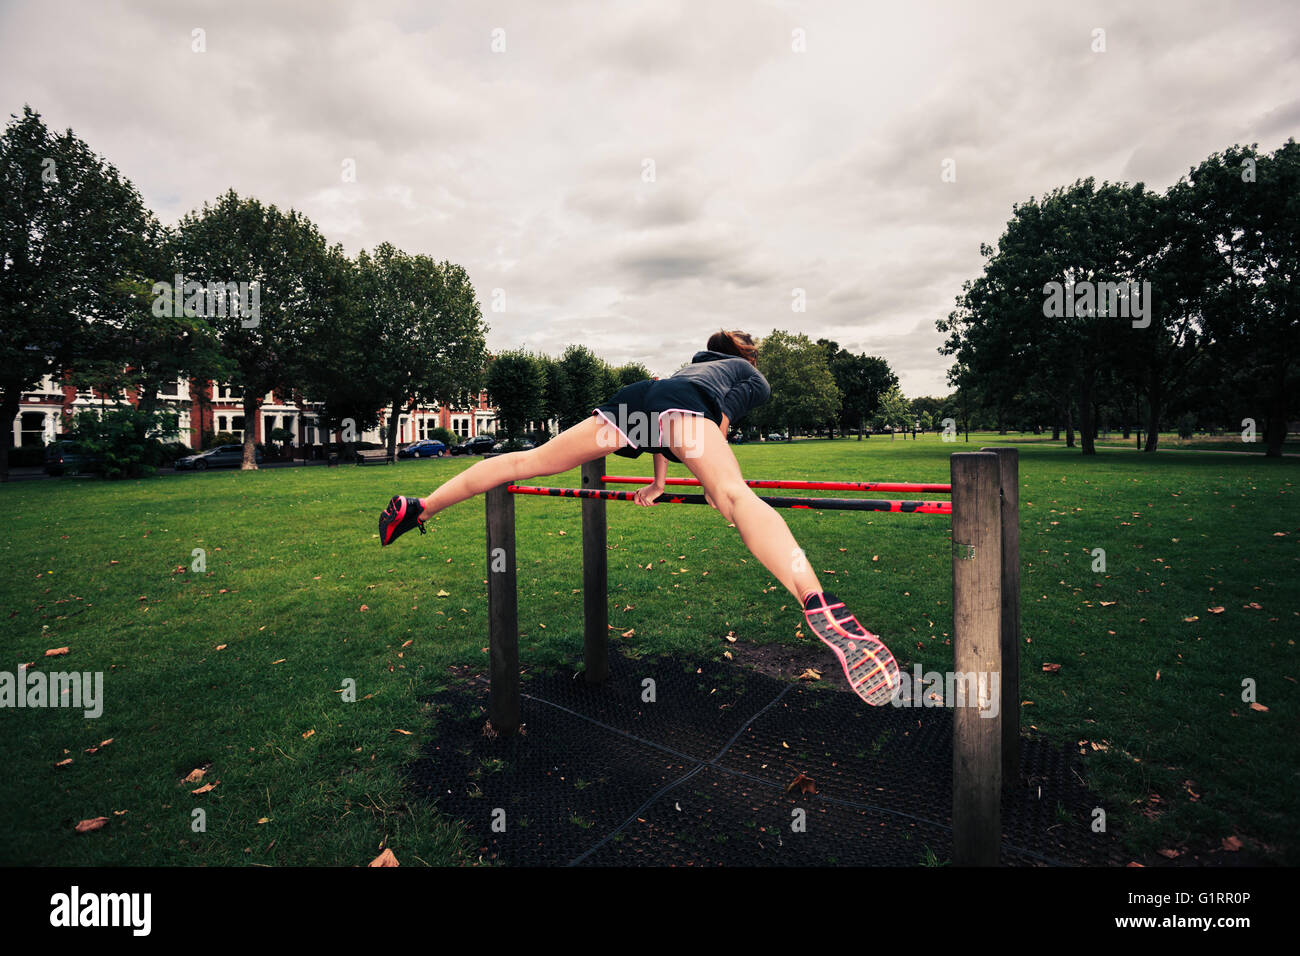 A woman is doing a planche on fitness equipment in the park - Stock Image